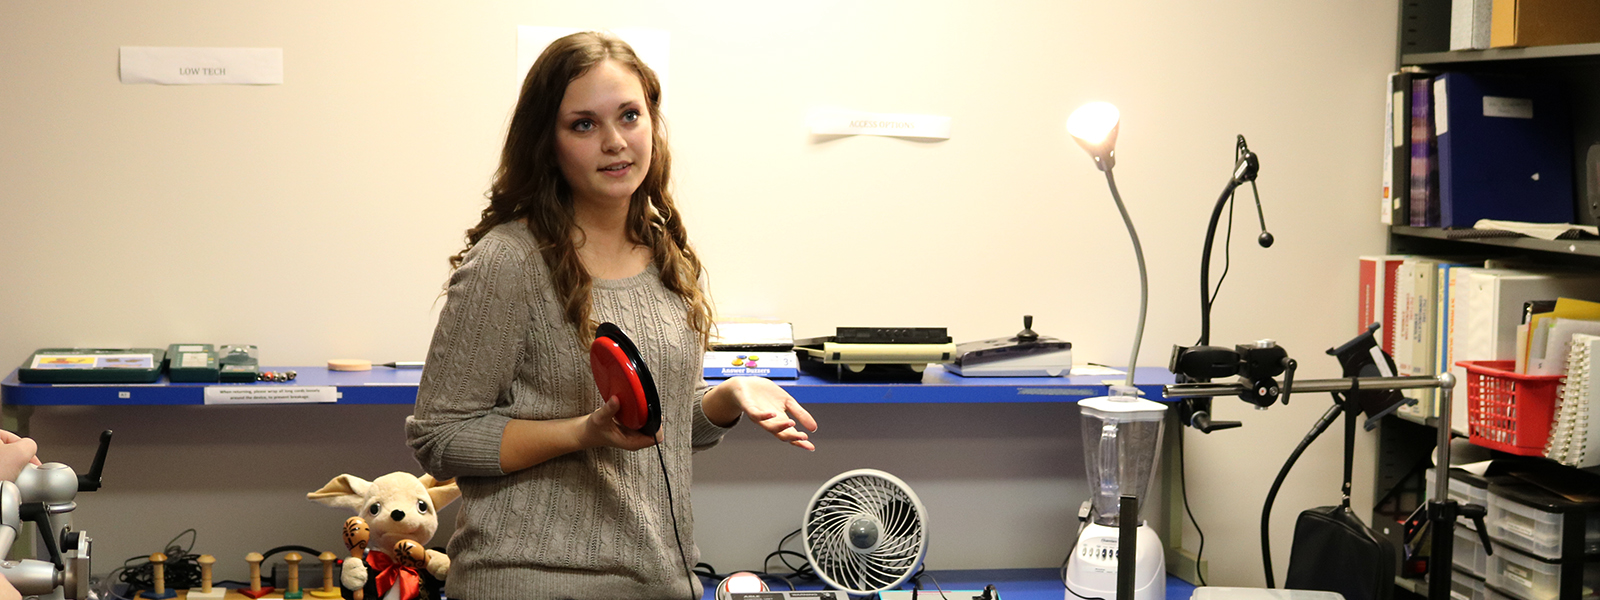 Madison Routier, a speech-language pathology graduate student explains various AAC methods and devices in the AAC Lab.